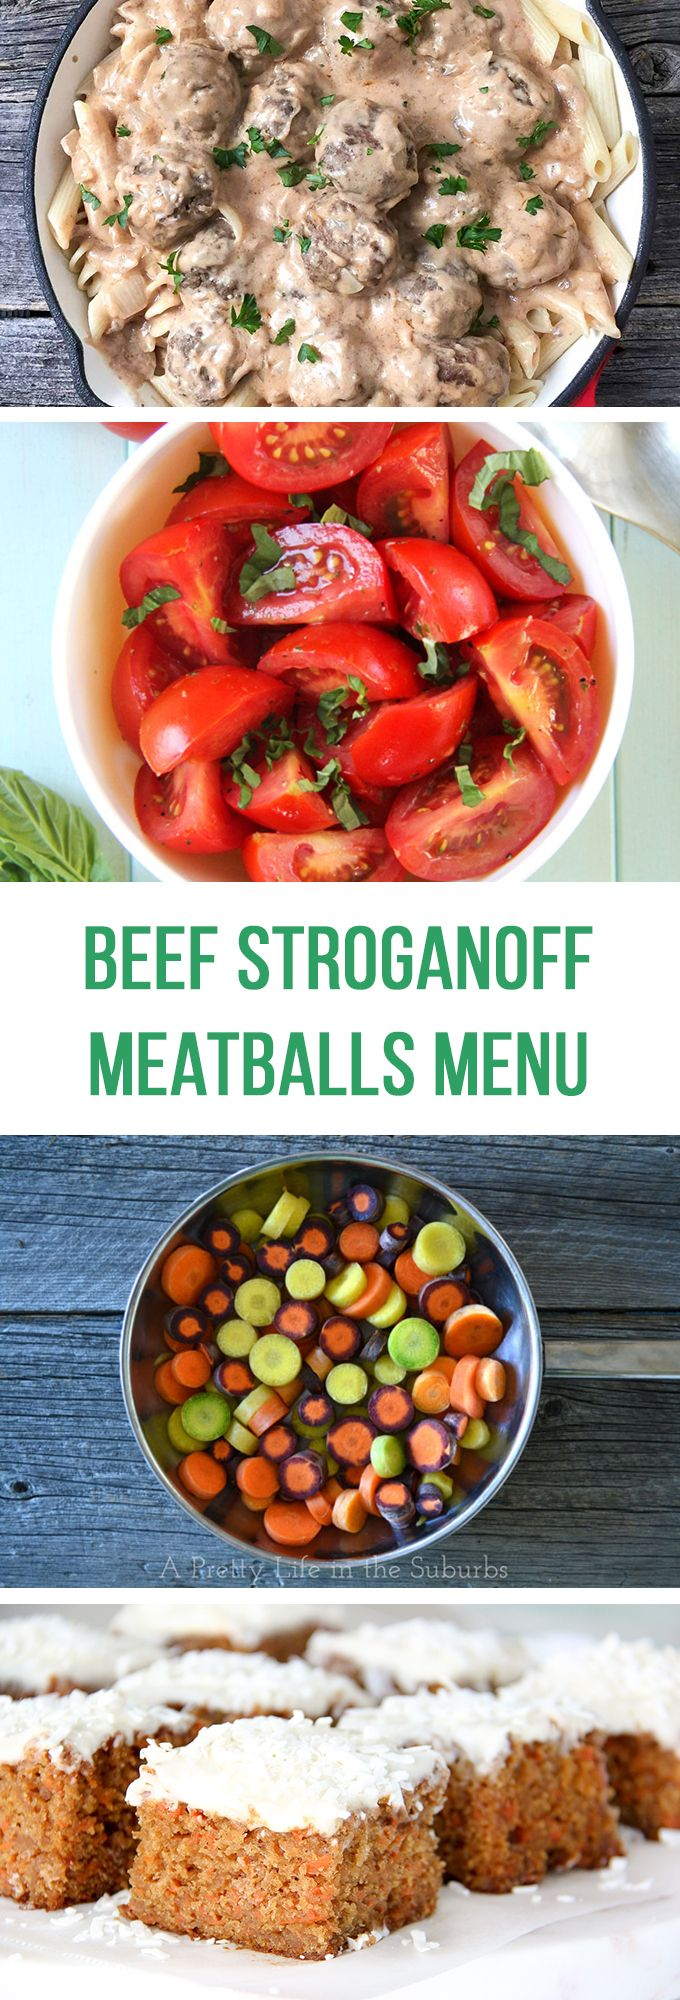 This Comforting Dinner Menu Includes Beef Stroganoff Meatballs Egg Noodles Glazed Carrots A Simple Toma Beef Stroganoff Busy Mom Recipes Meatball Stroganoff